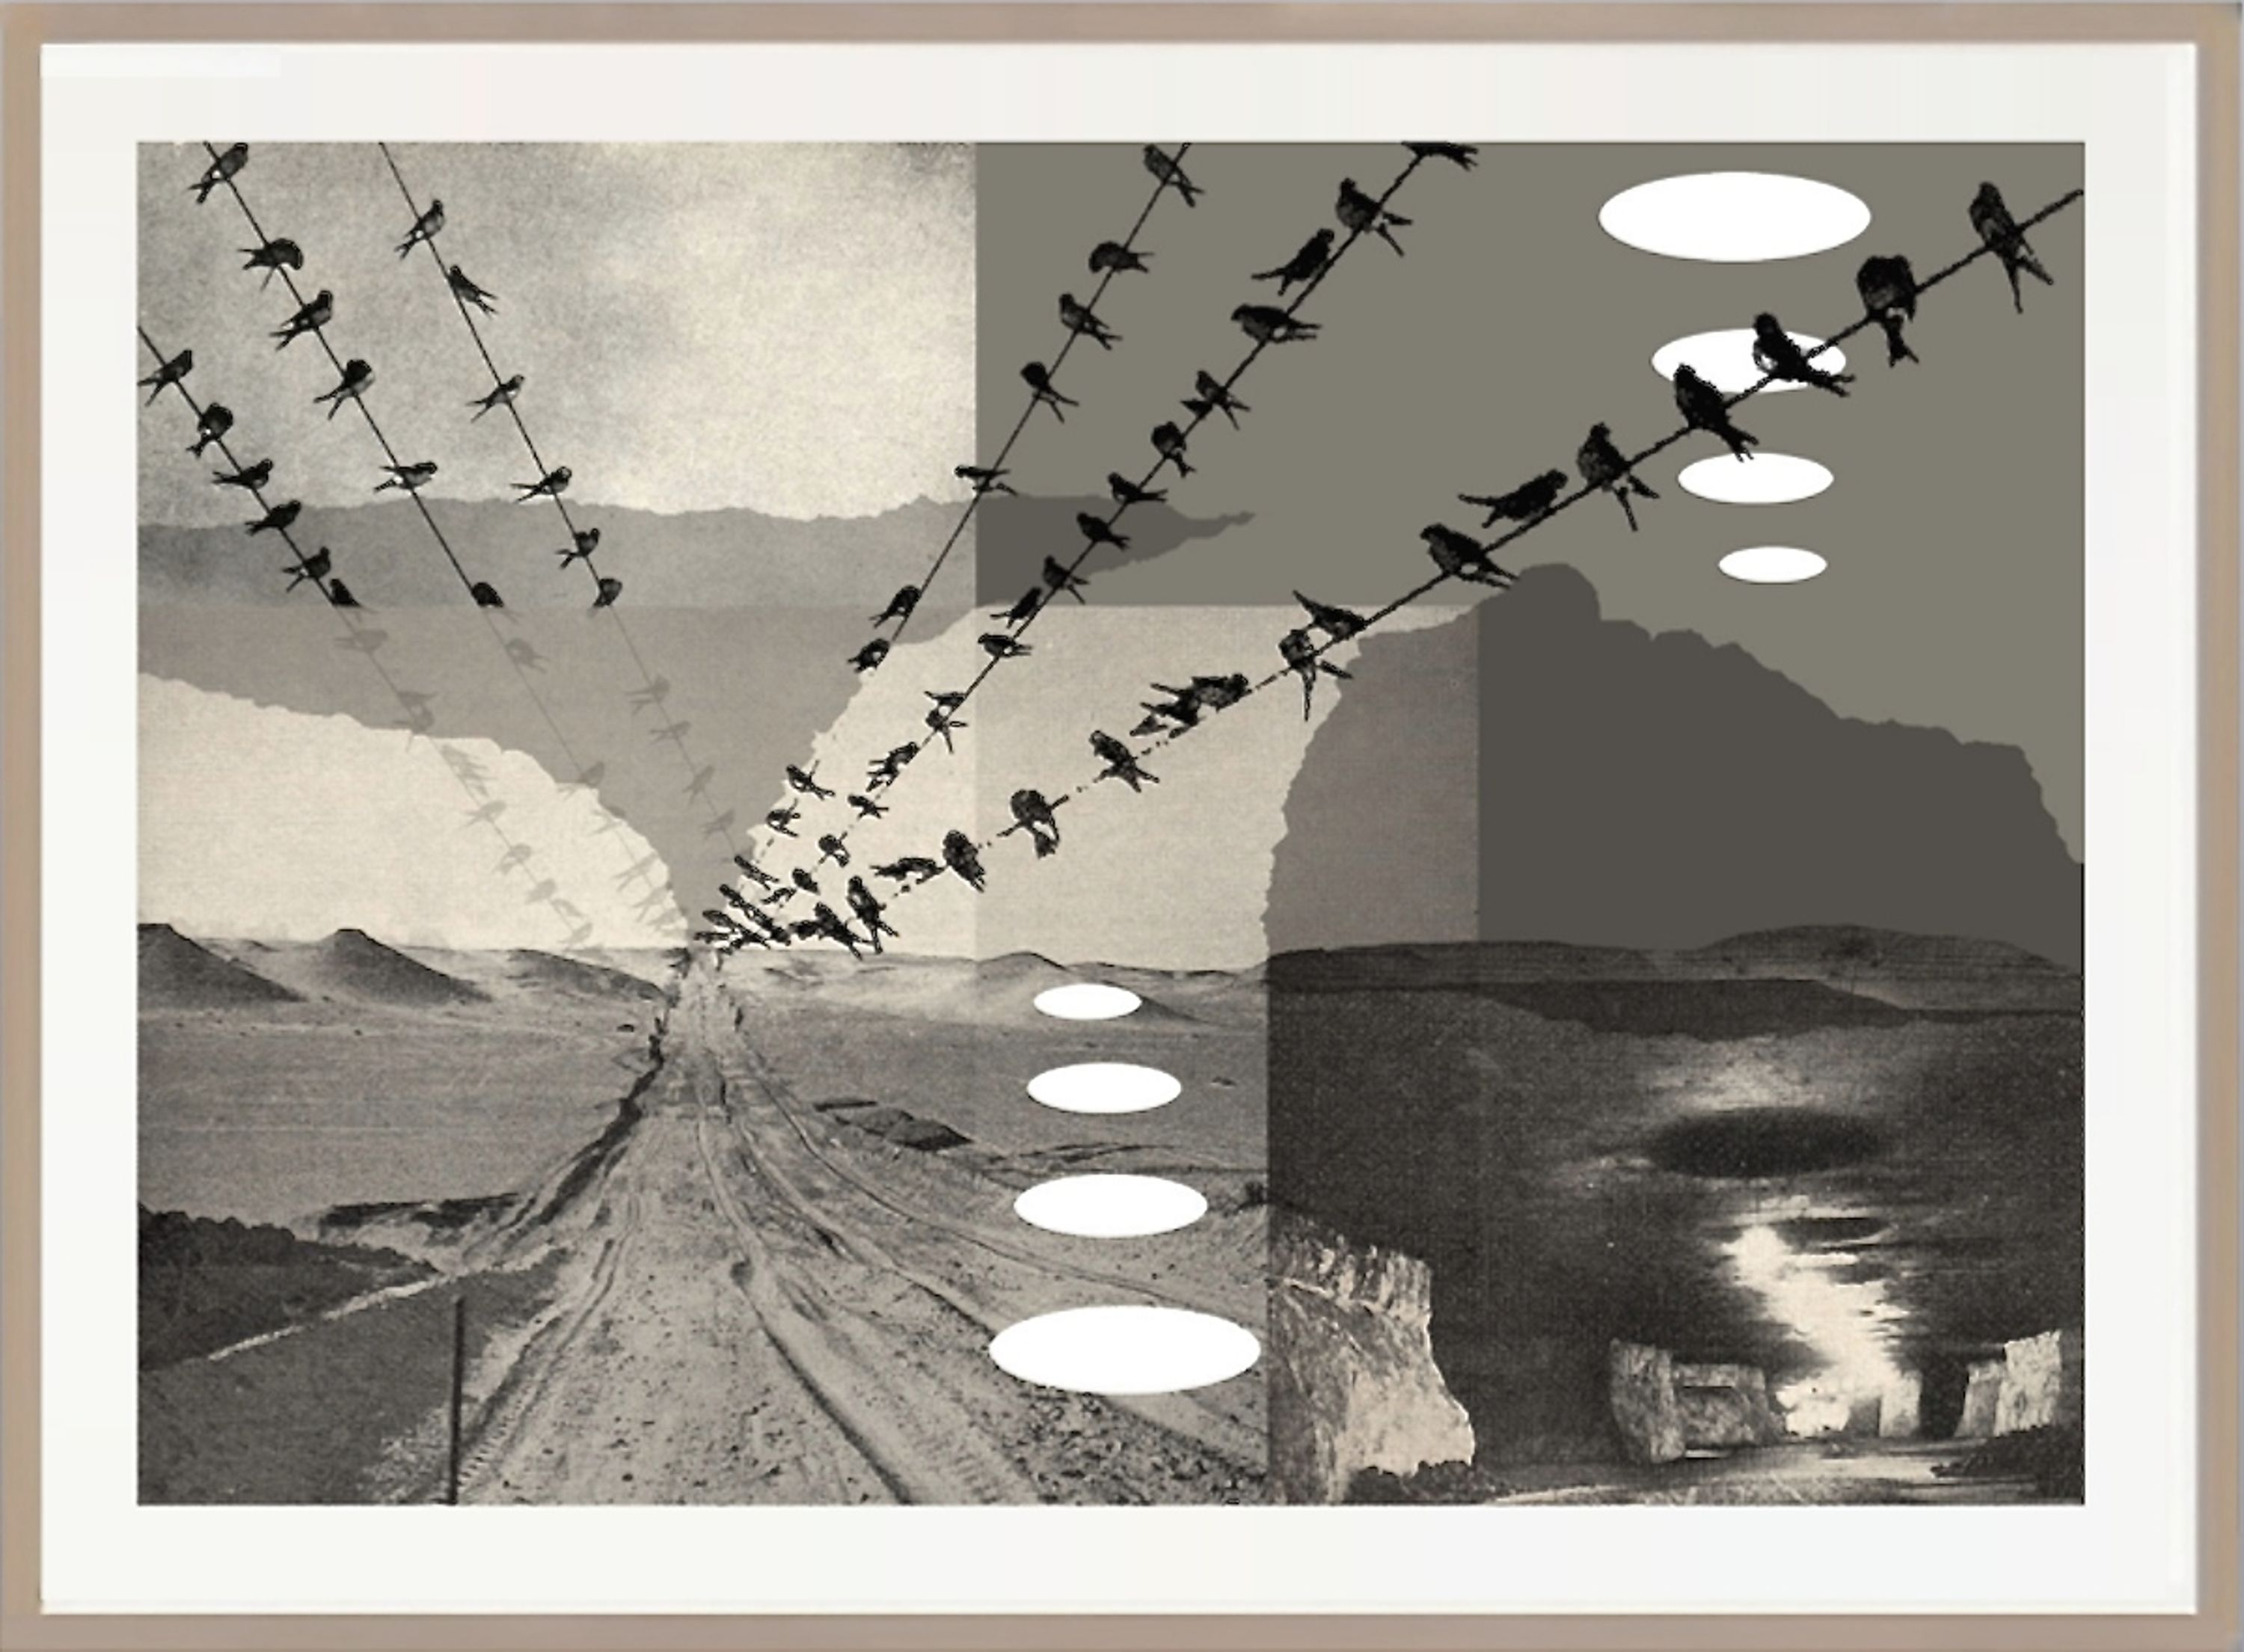 Book of knowledge - Planche 6 - by Mick Finch, Lasgalerie (2 of 2)